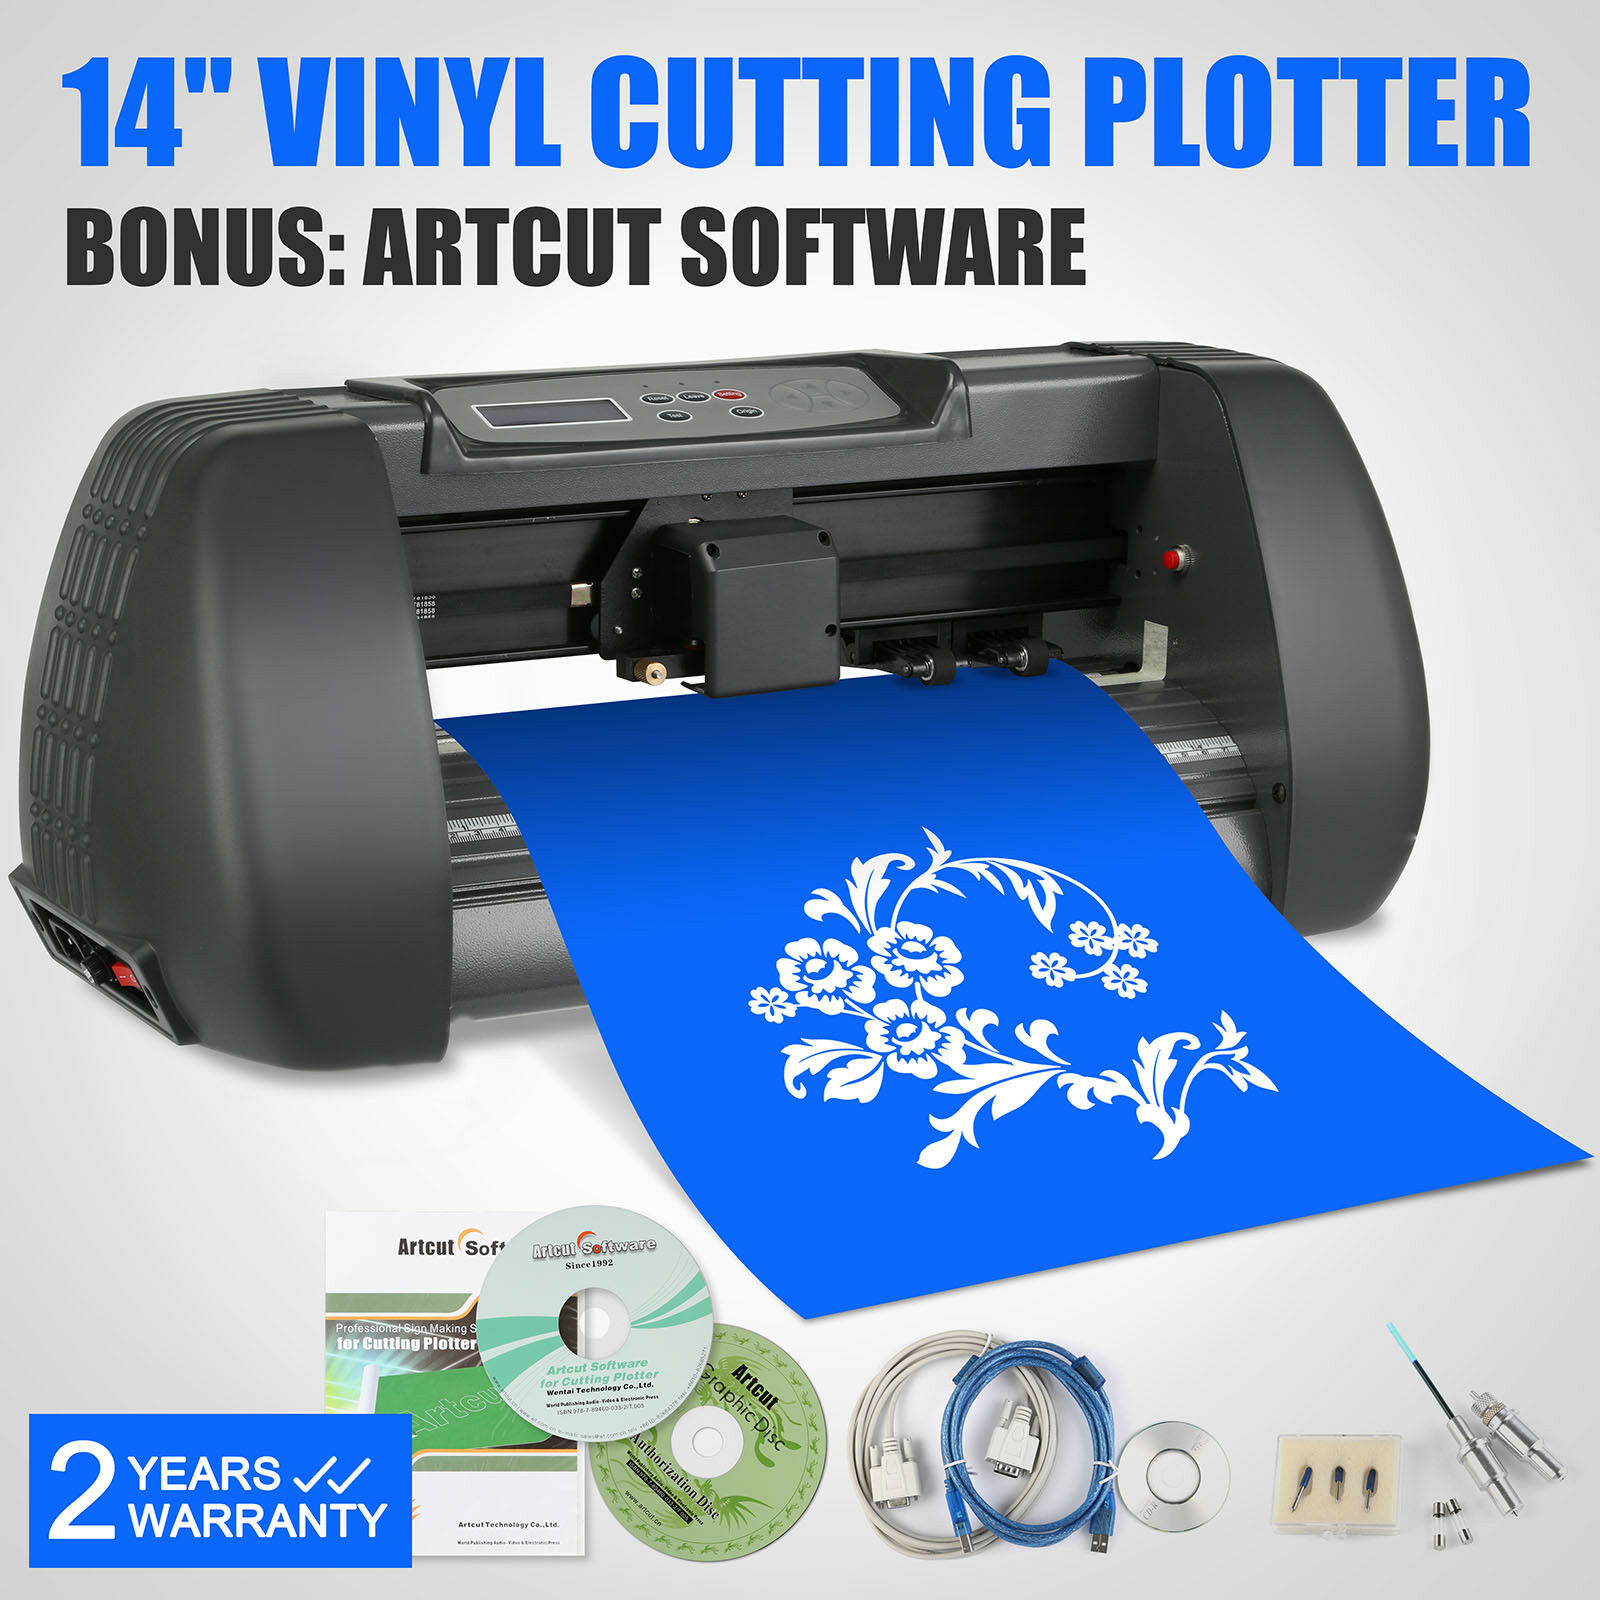 Automatic Vinyl Cutting Plotter 14 Inch 375MM cutter plotter USB Port 3 Blade Cutter enlarge